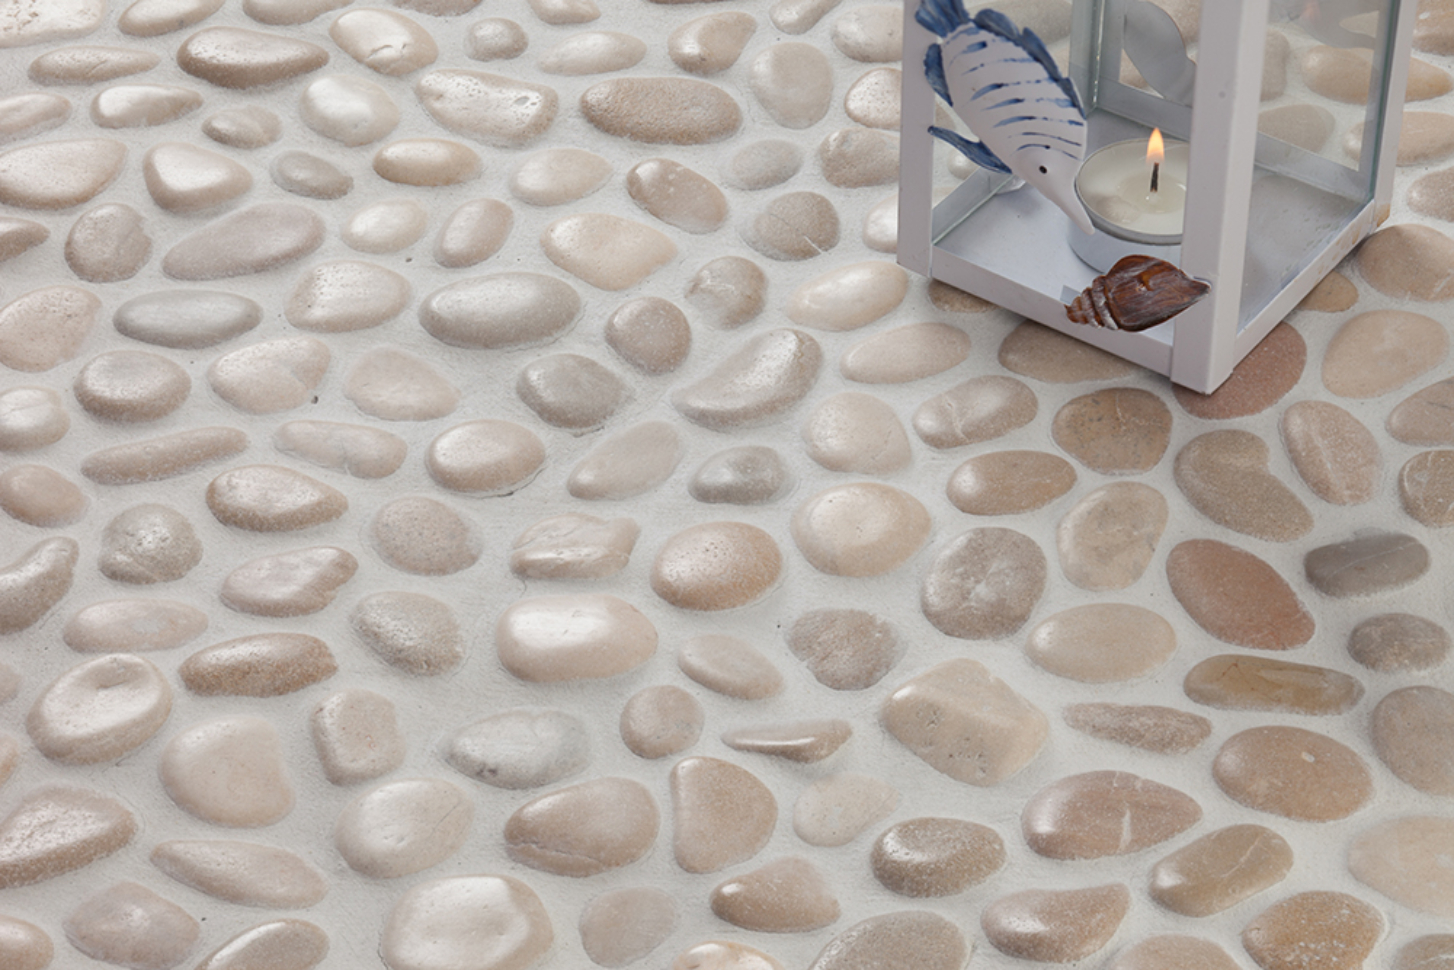 QUALITYSTONE.INFO product images